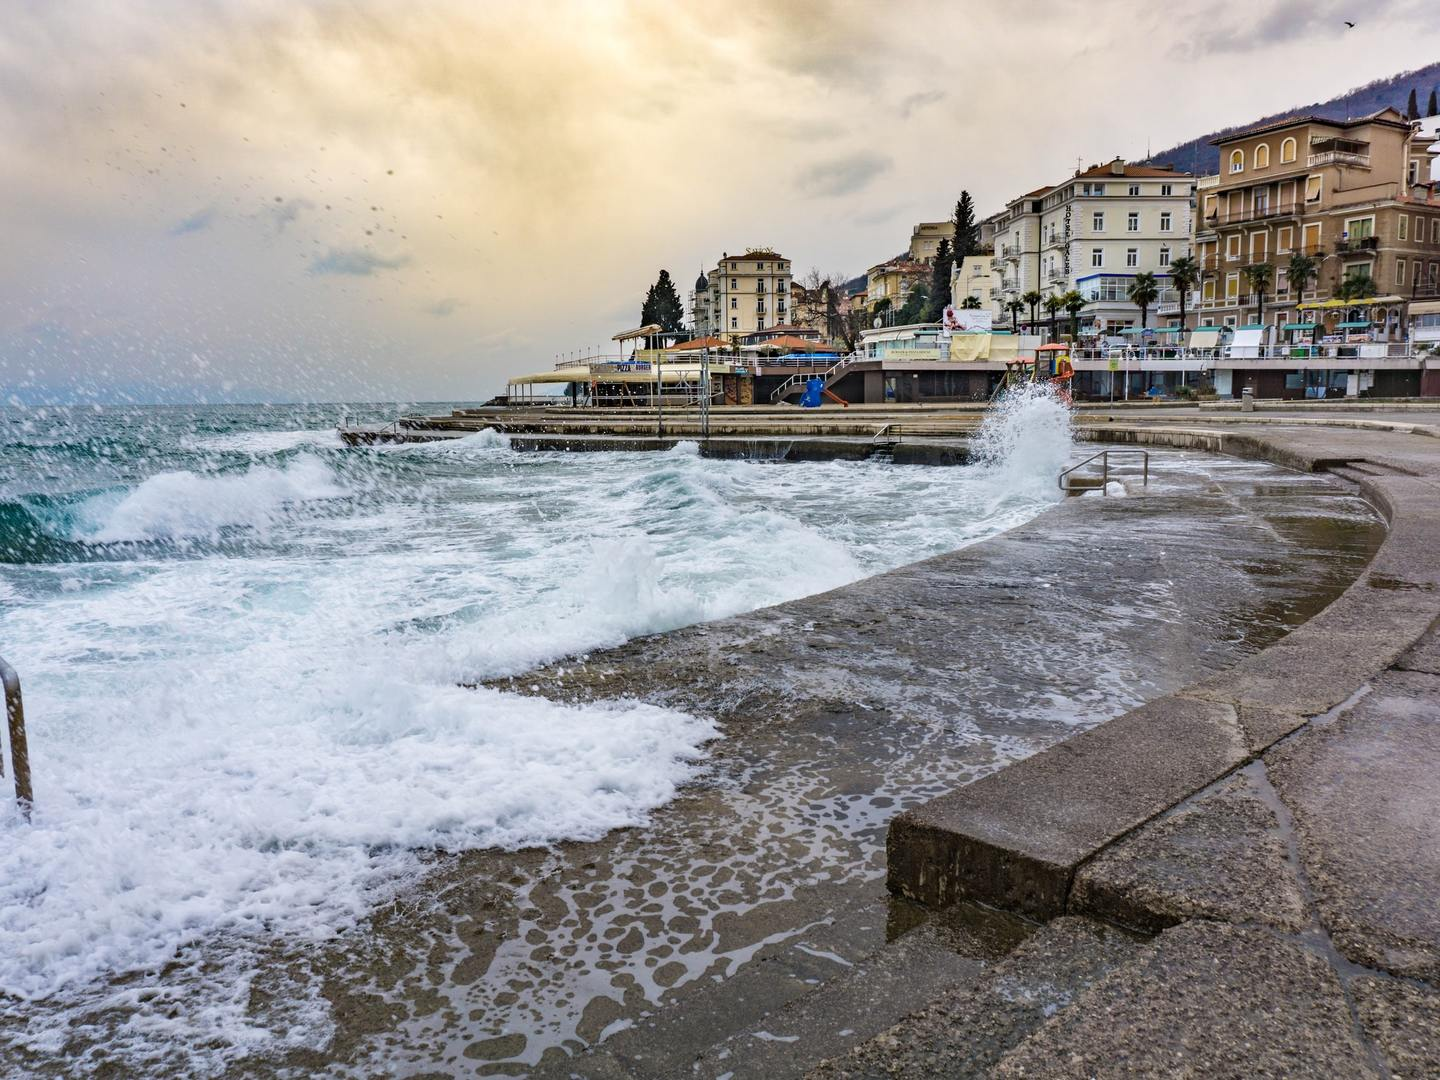 Waves lapping the town of Opatija